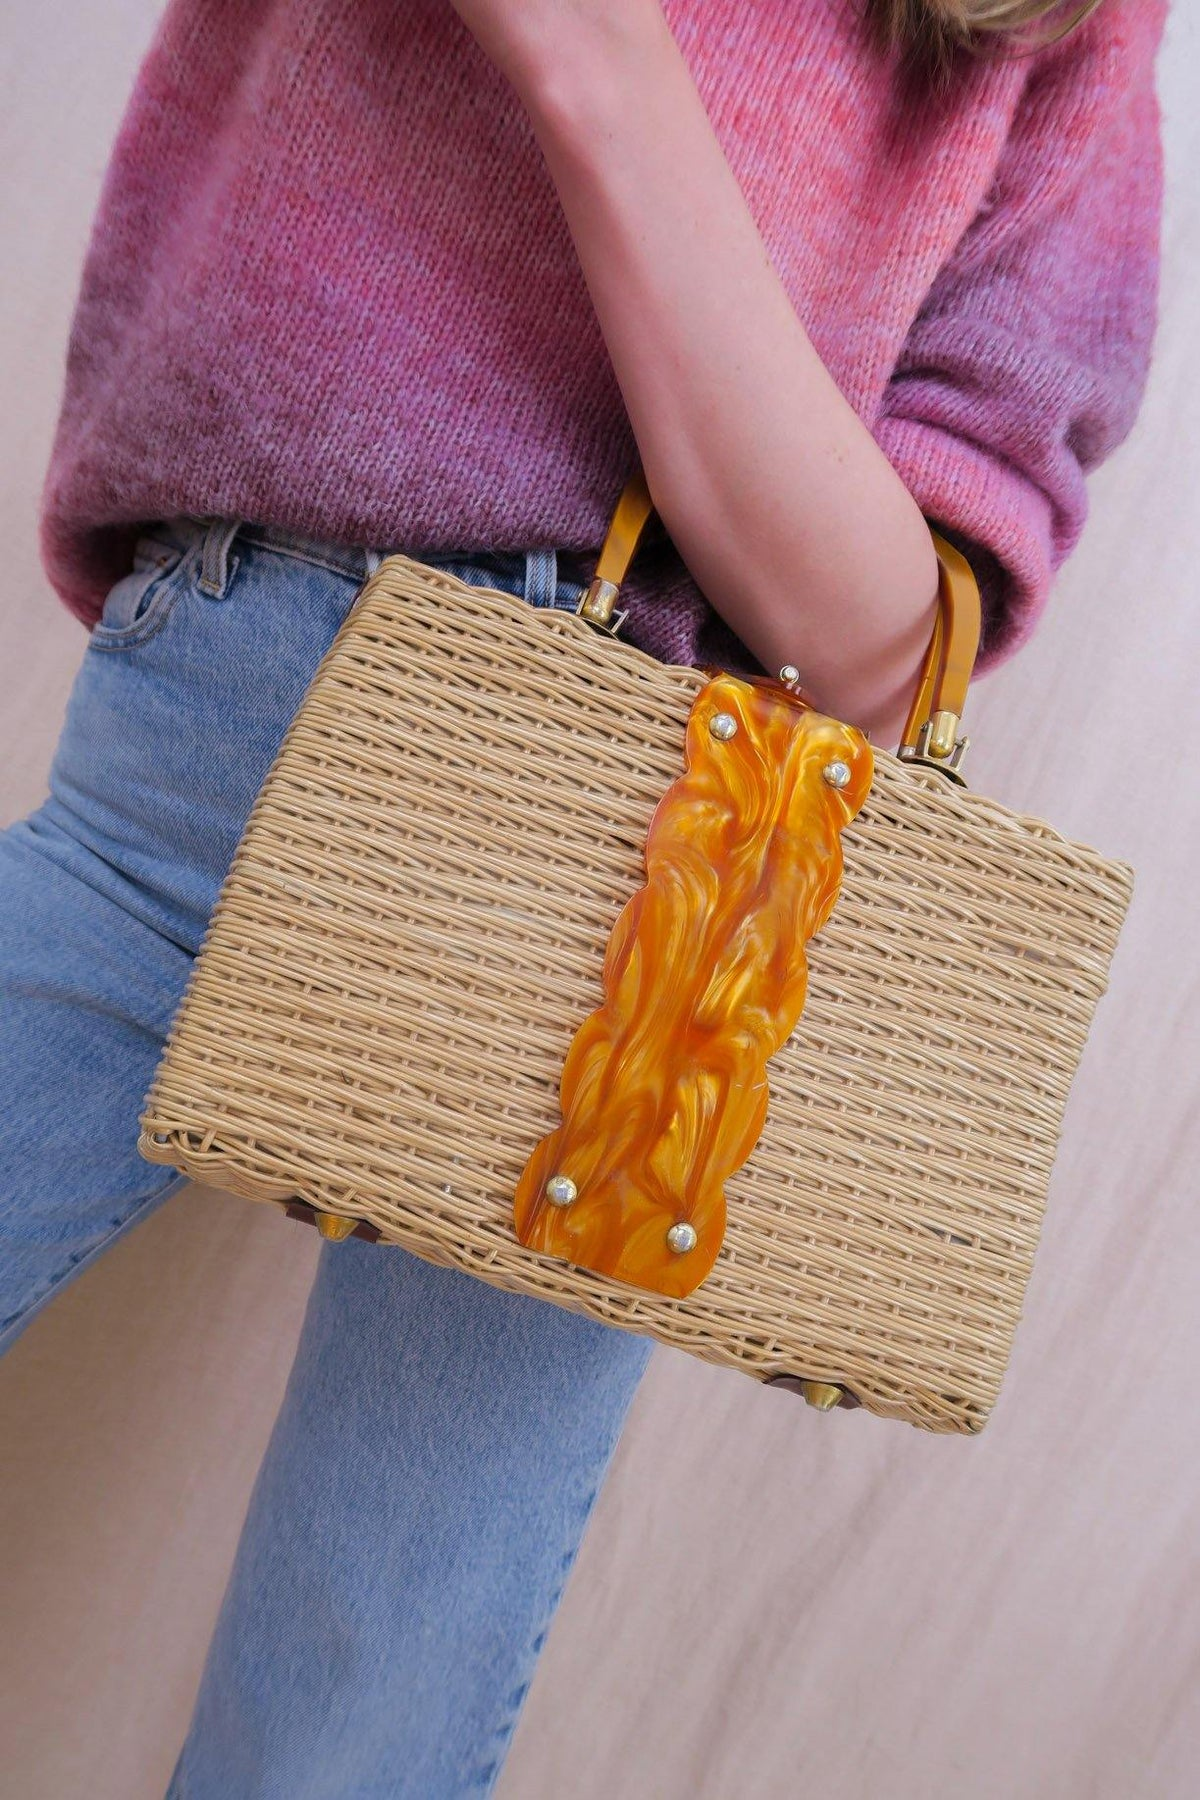 Vintage Tortoise Shell Wicker Bag from Sweet and Spark